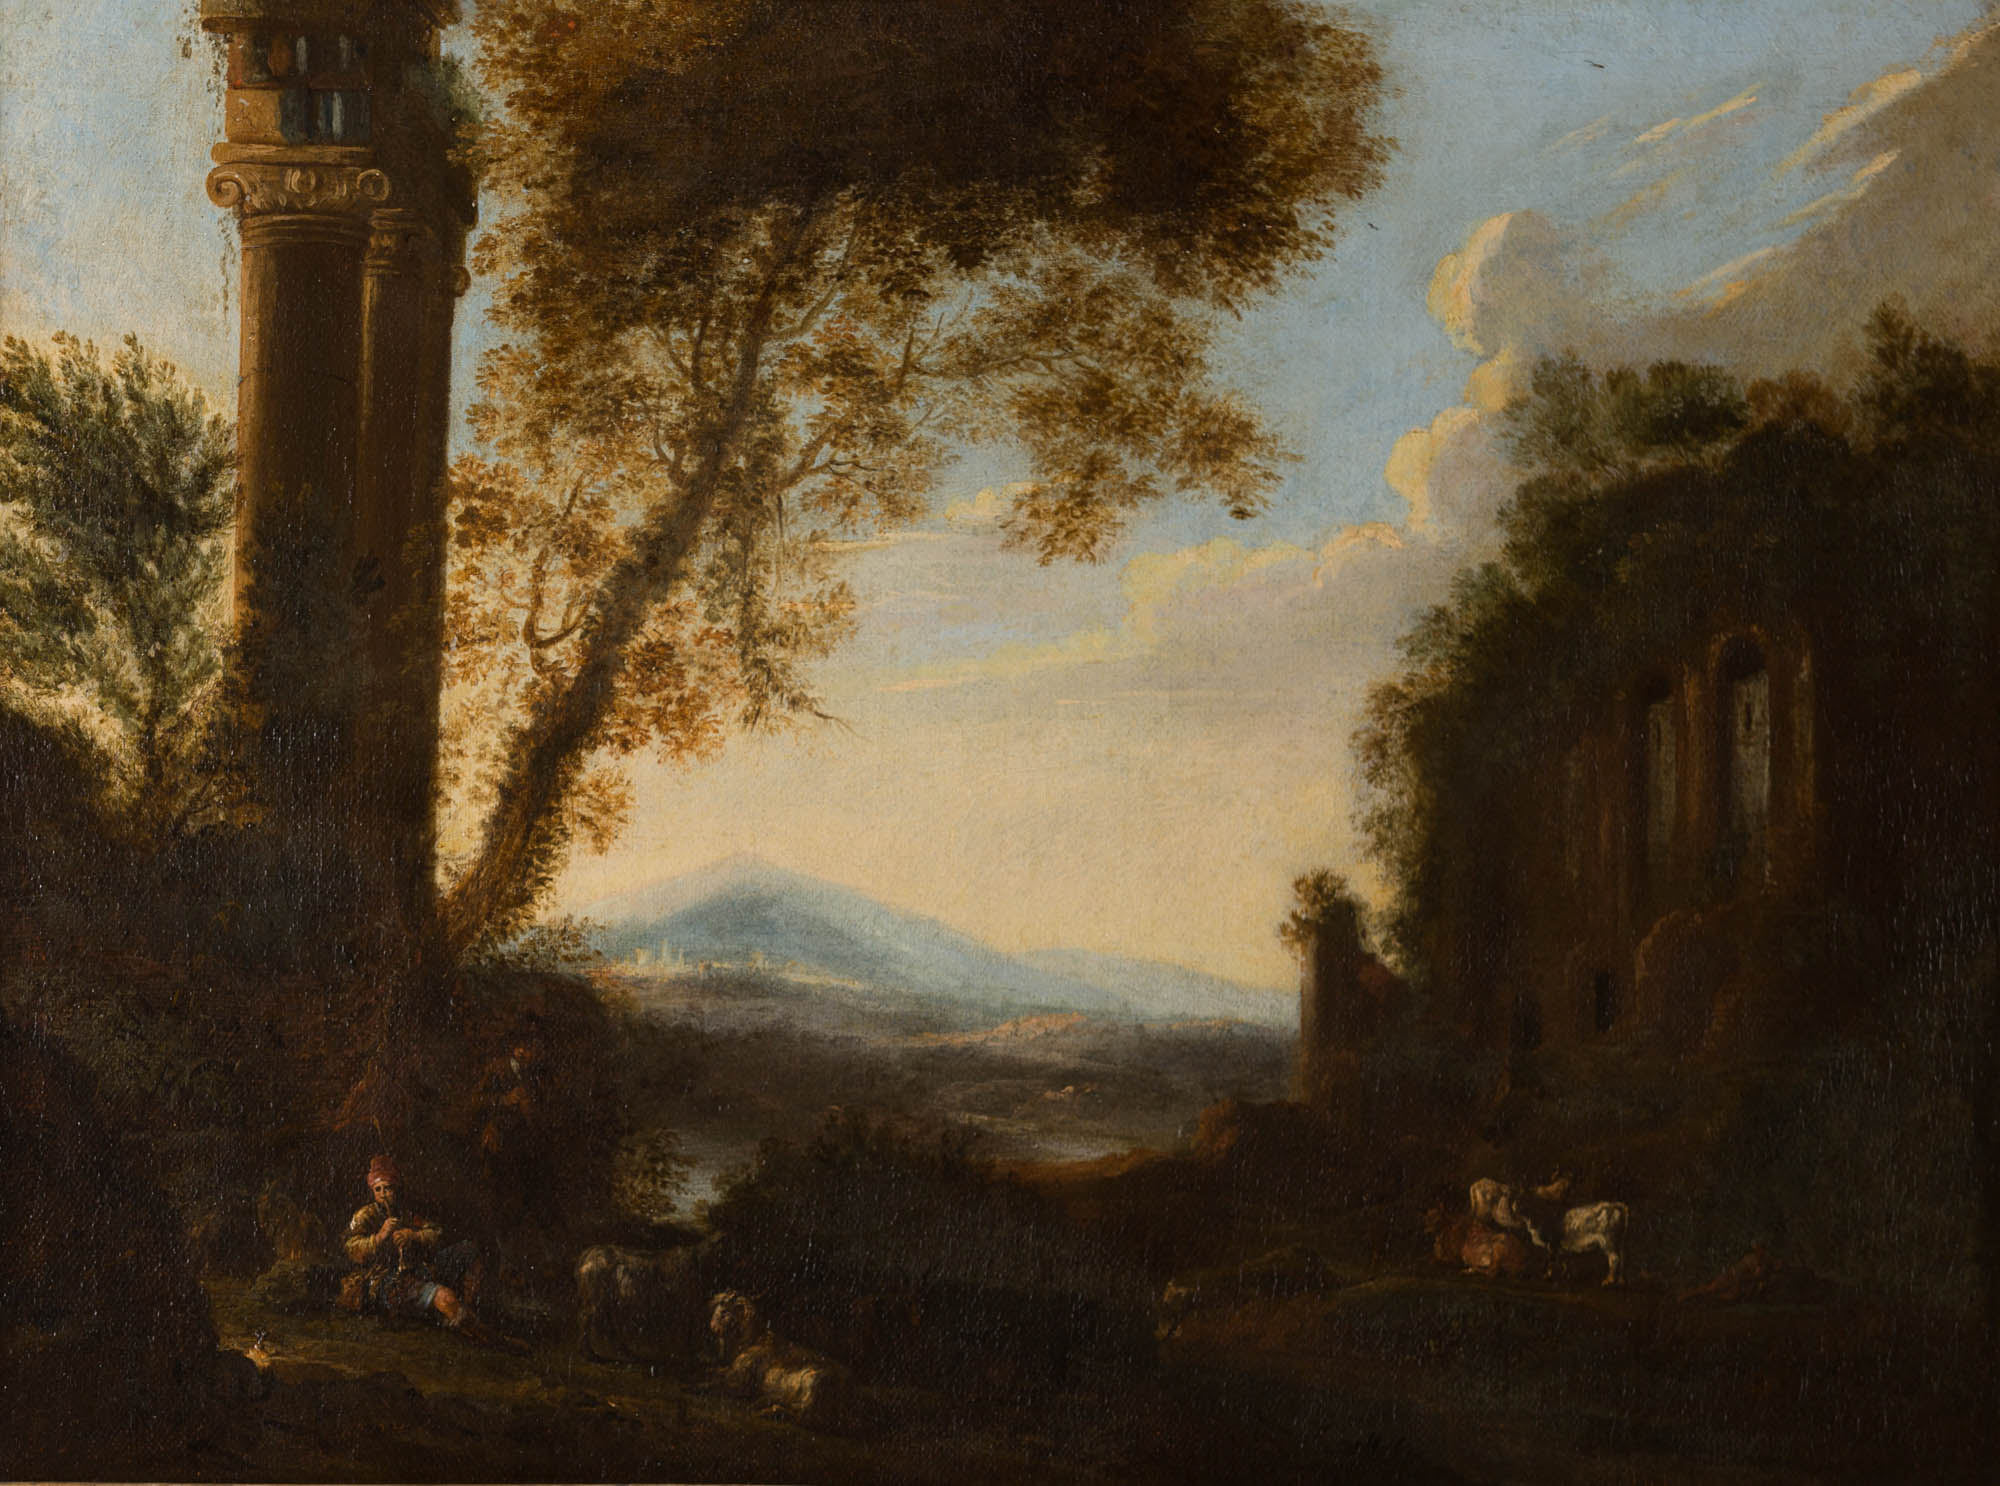 A Shepherd piping to his Goats in an Italianate Landscape, Circle of Frederik De Moucheron (1633-1686).